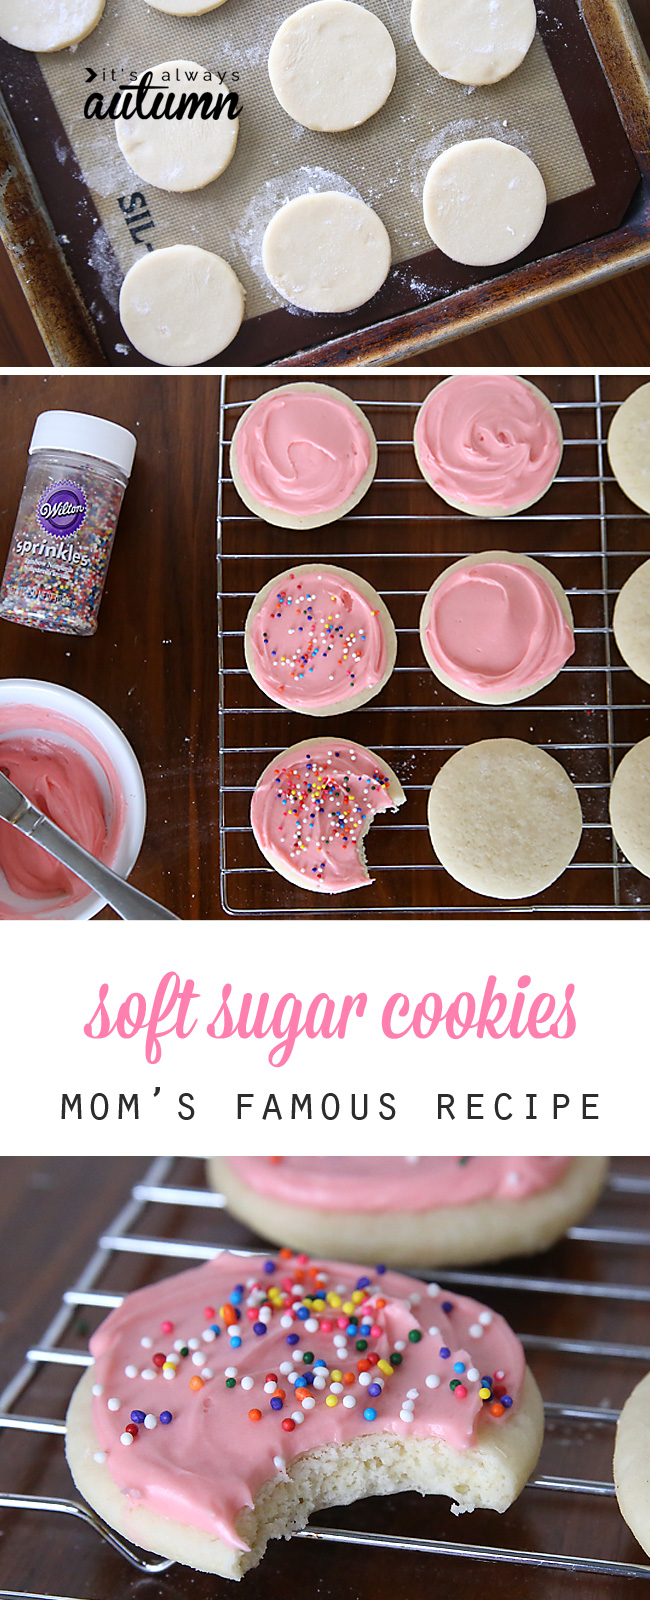 the best soft sugar cookie + cream cheese frosting recipe